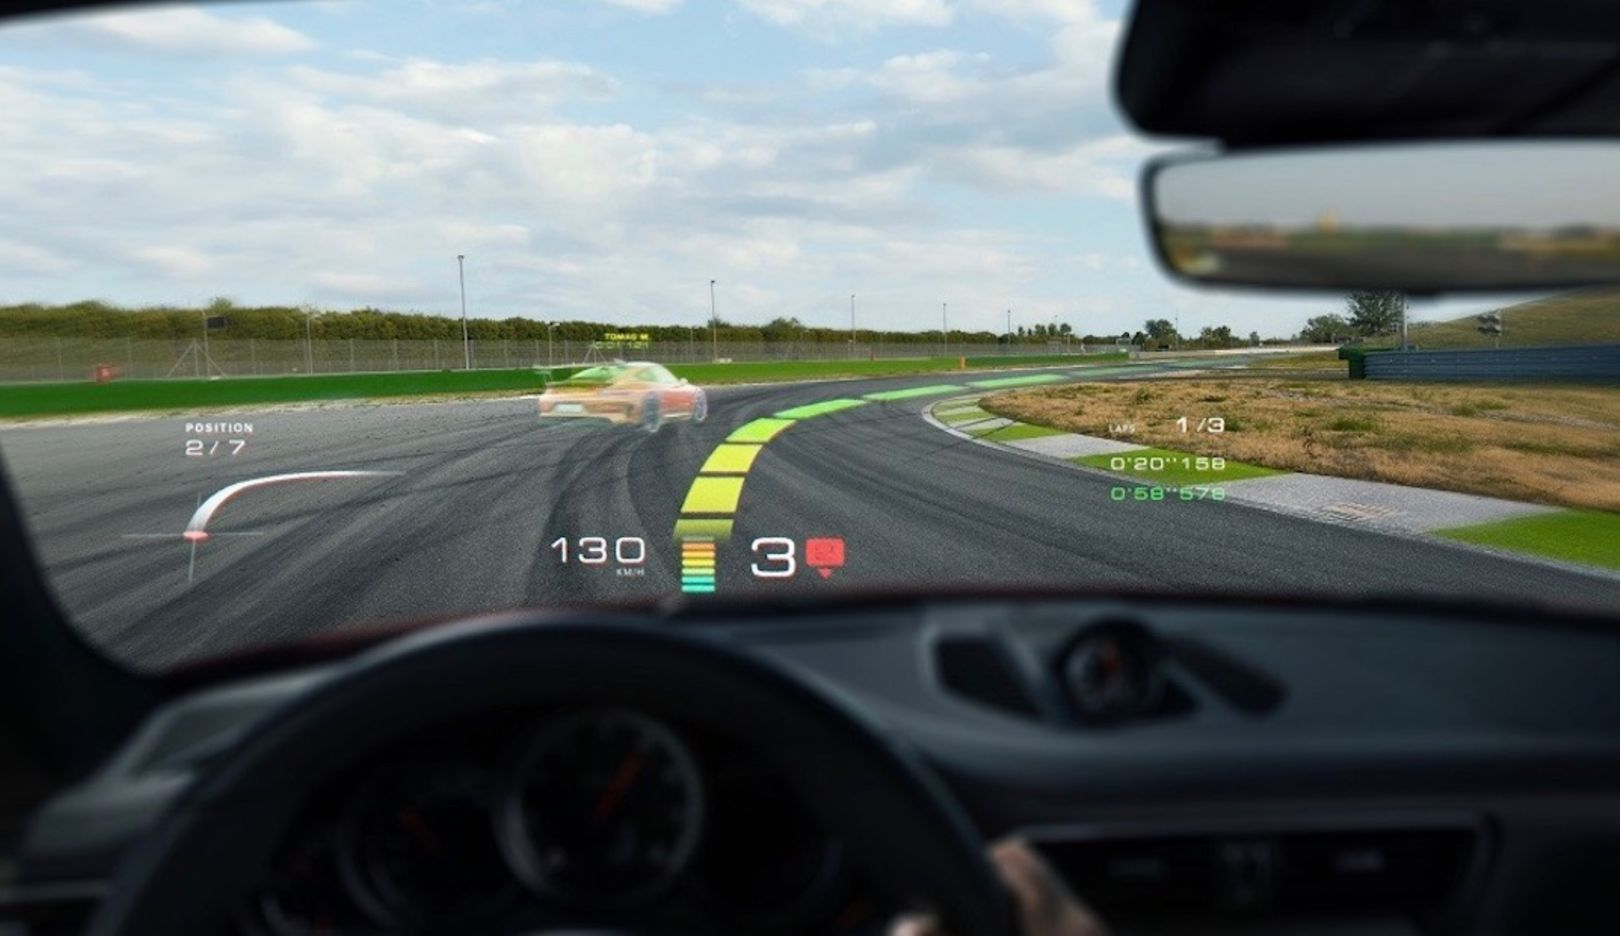 Holographic augmented reality head-up display technologiy, WayRay, 2018, Porsche AG